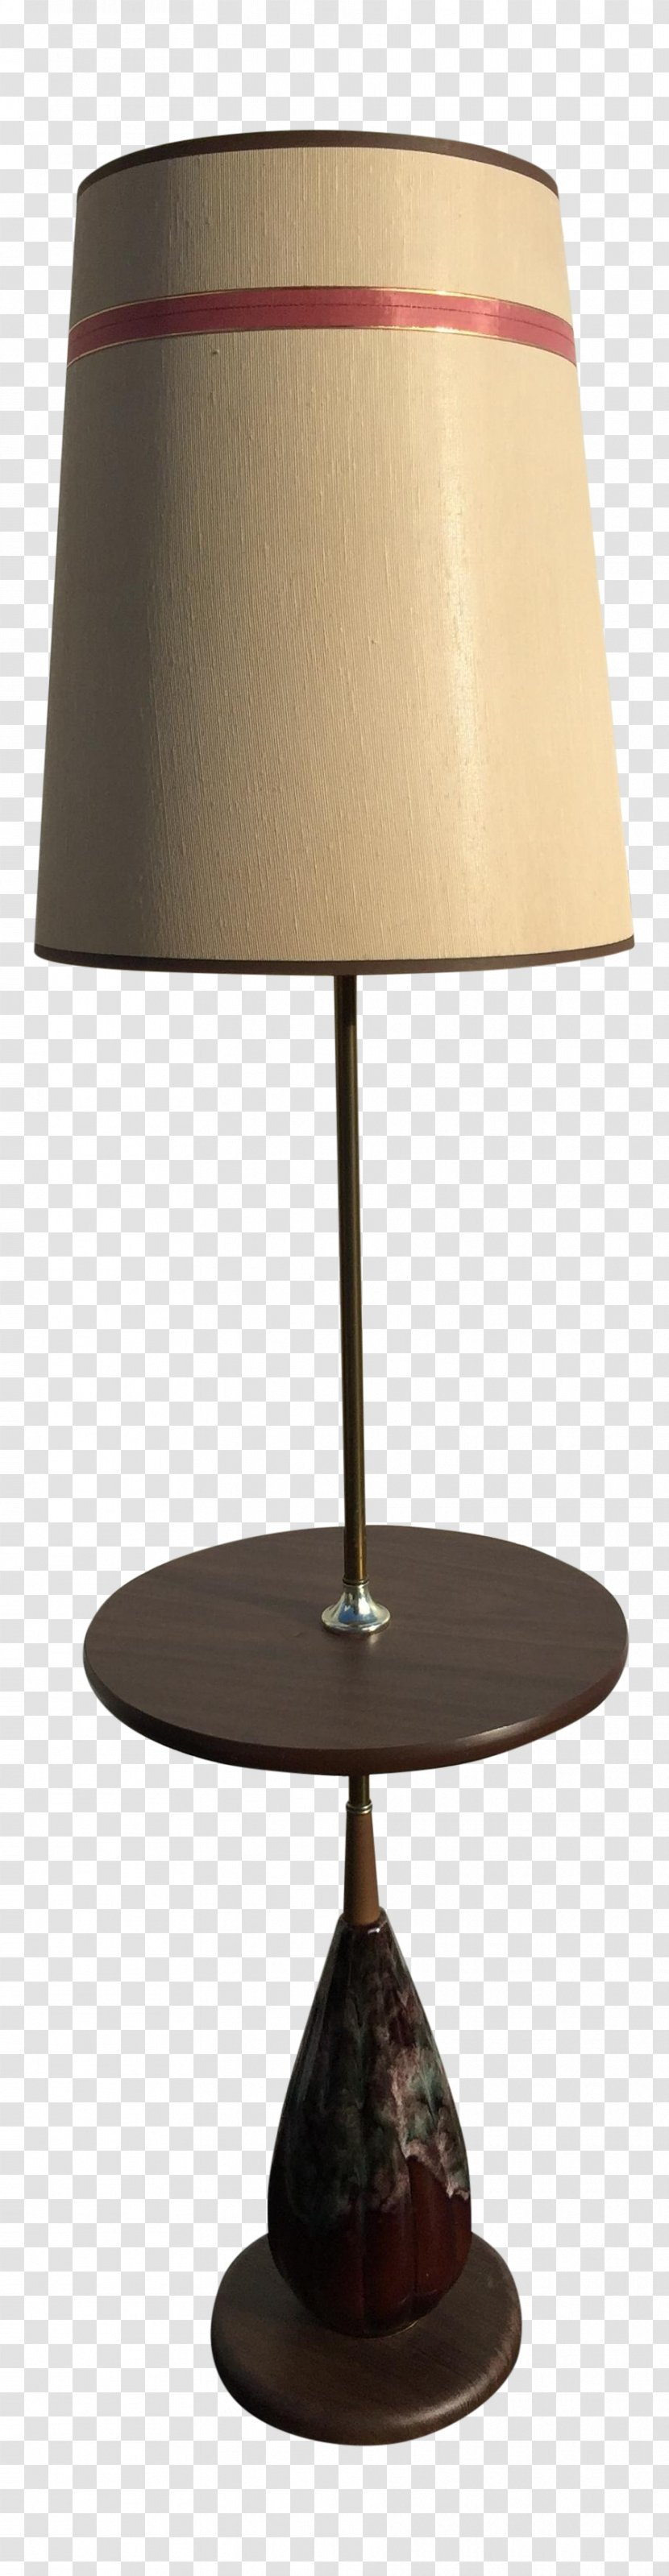 Picture of: Lamp Shades Lava Electric Light Floor Midcentury Modern Chinese Style Retro Transparent Png